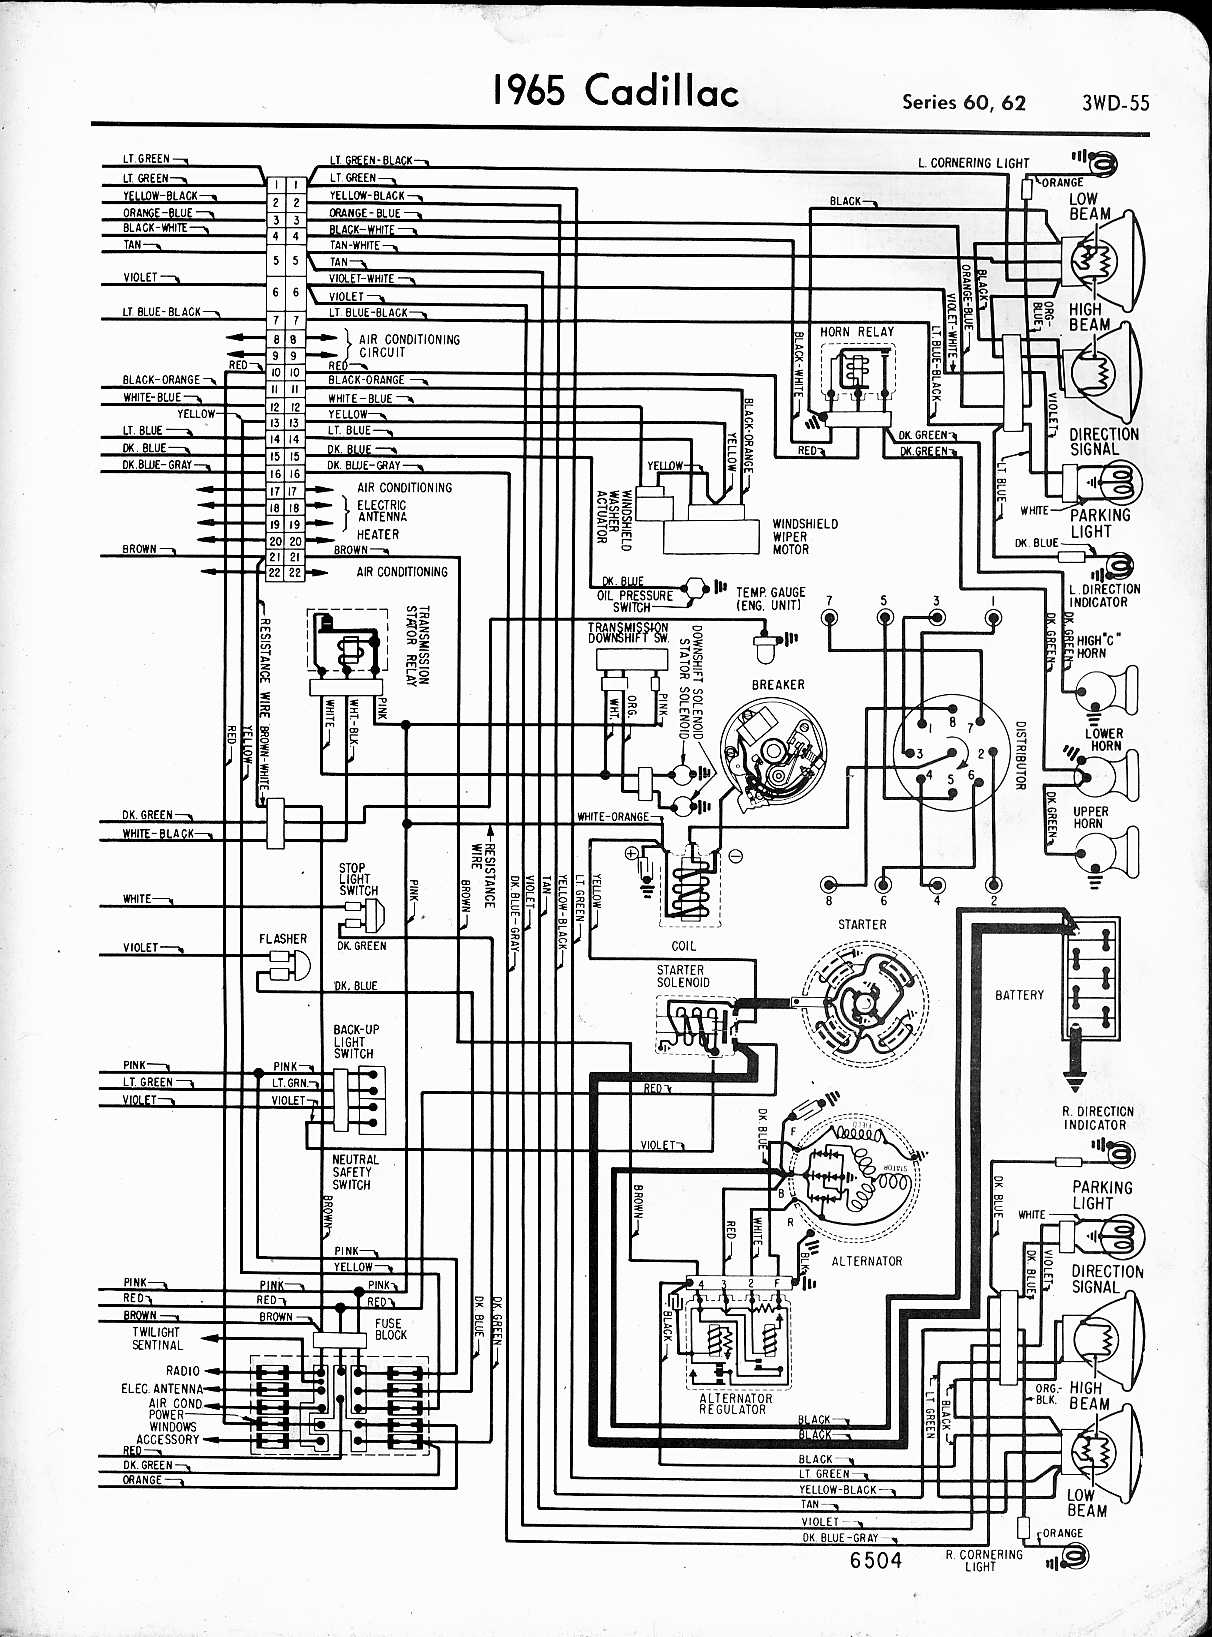 07 escalade fuse box diagram oem for sale house wiring diagram rh maxturner co